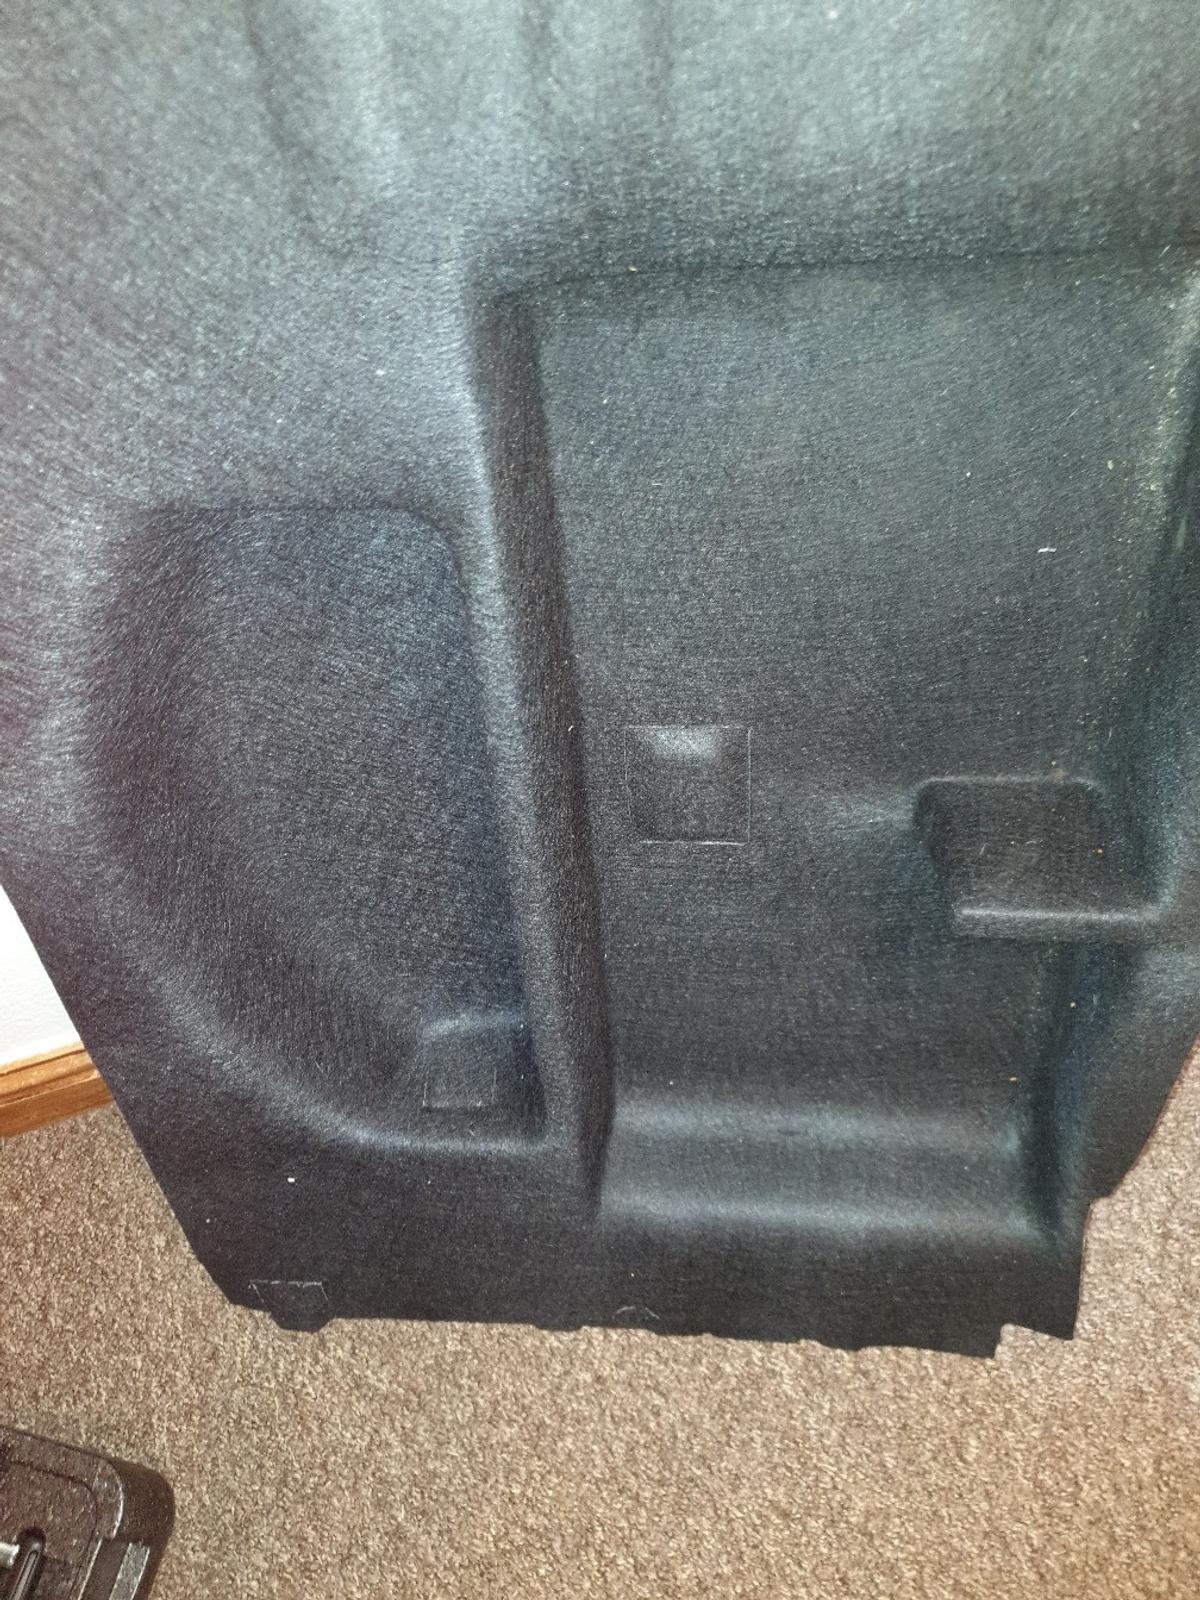 vauxhall astra j inflation kit out of a 2012 model.brand new ,never used